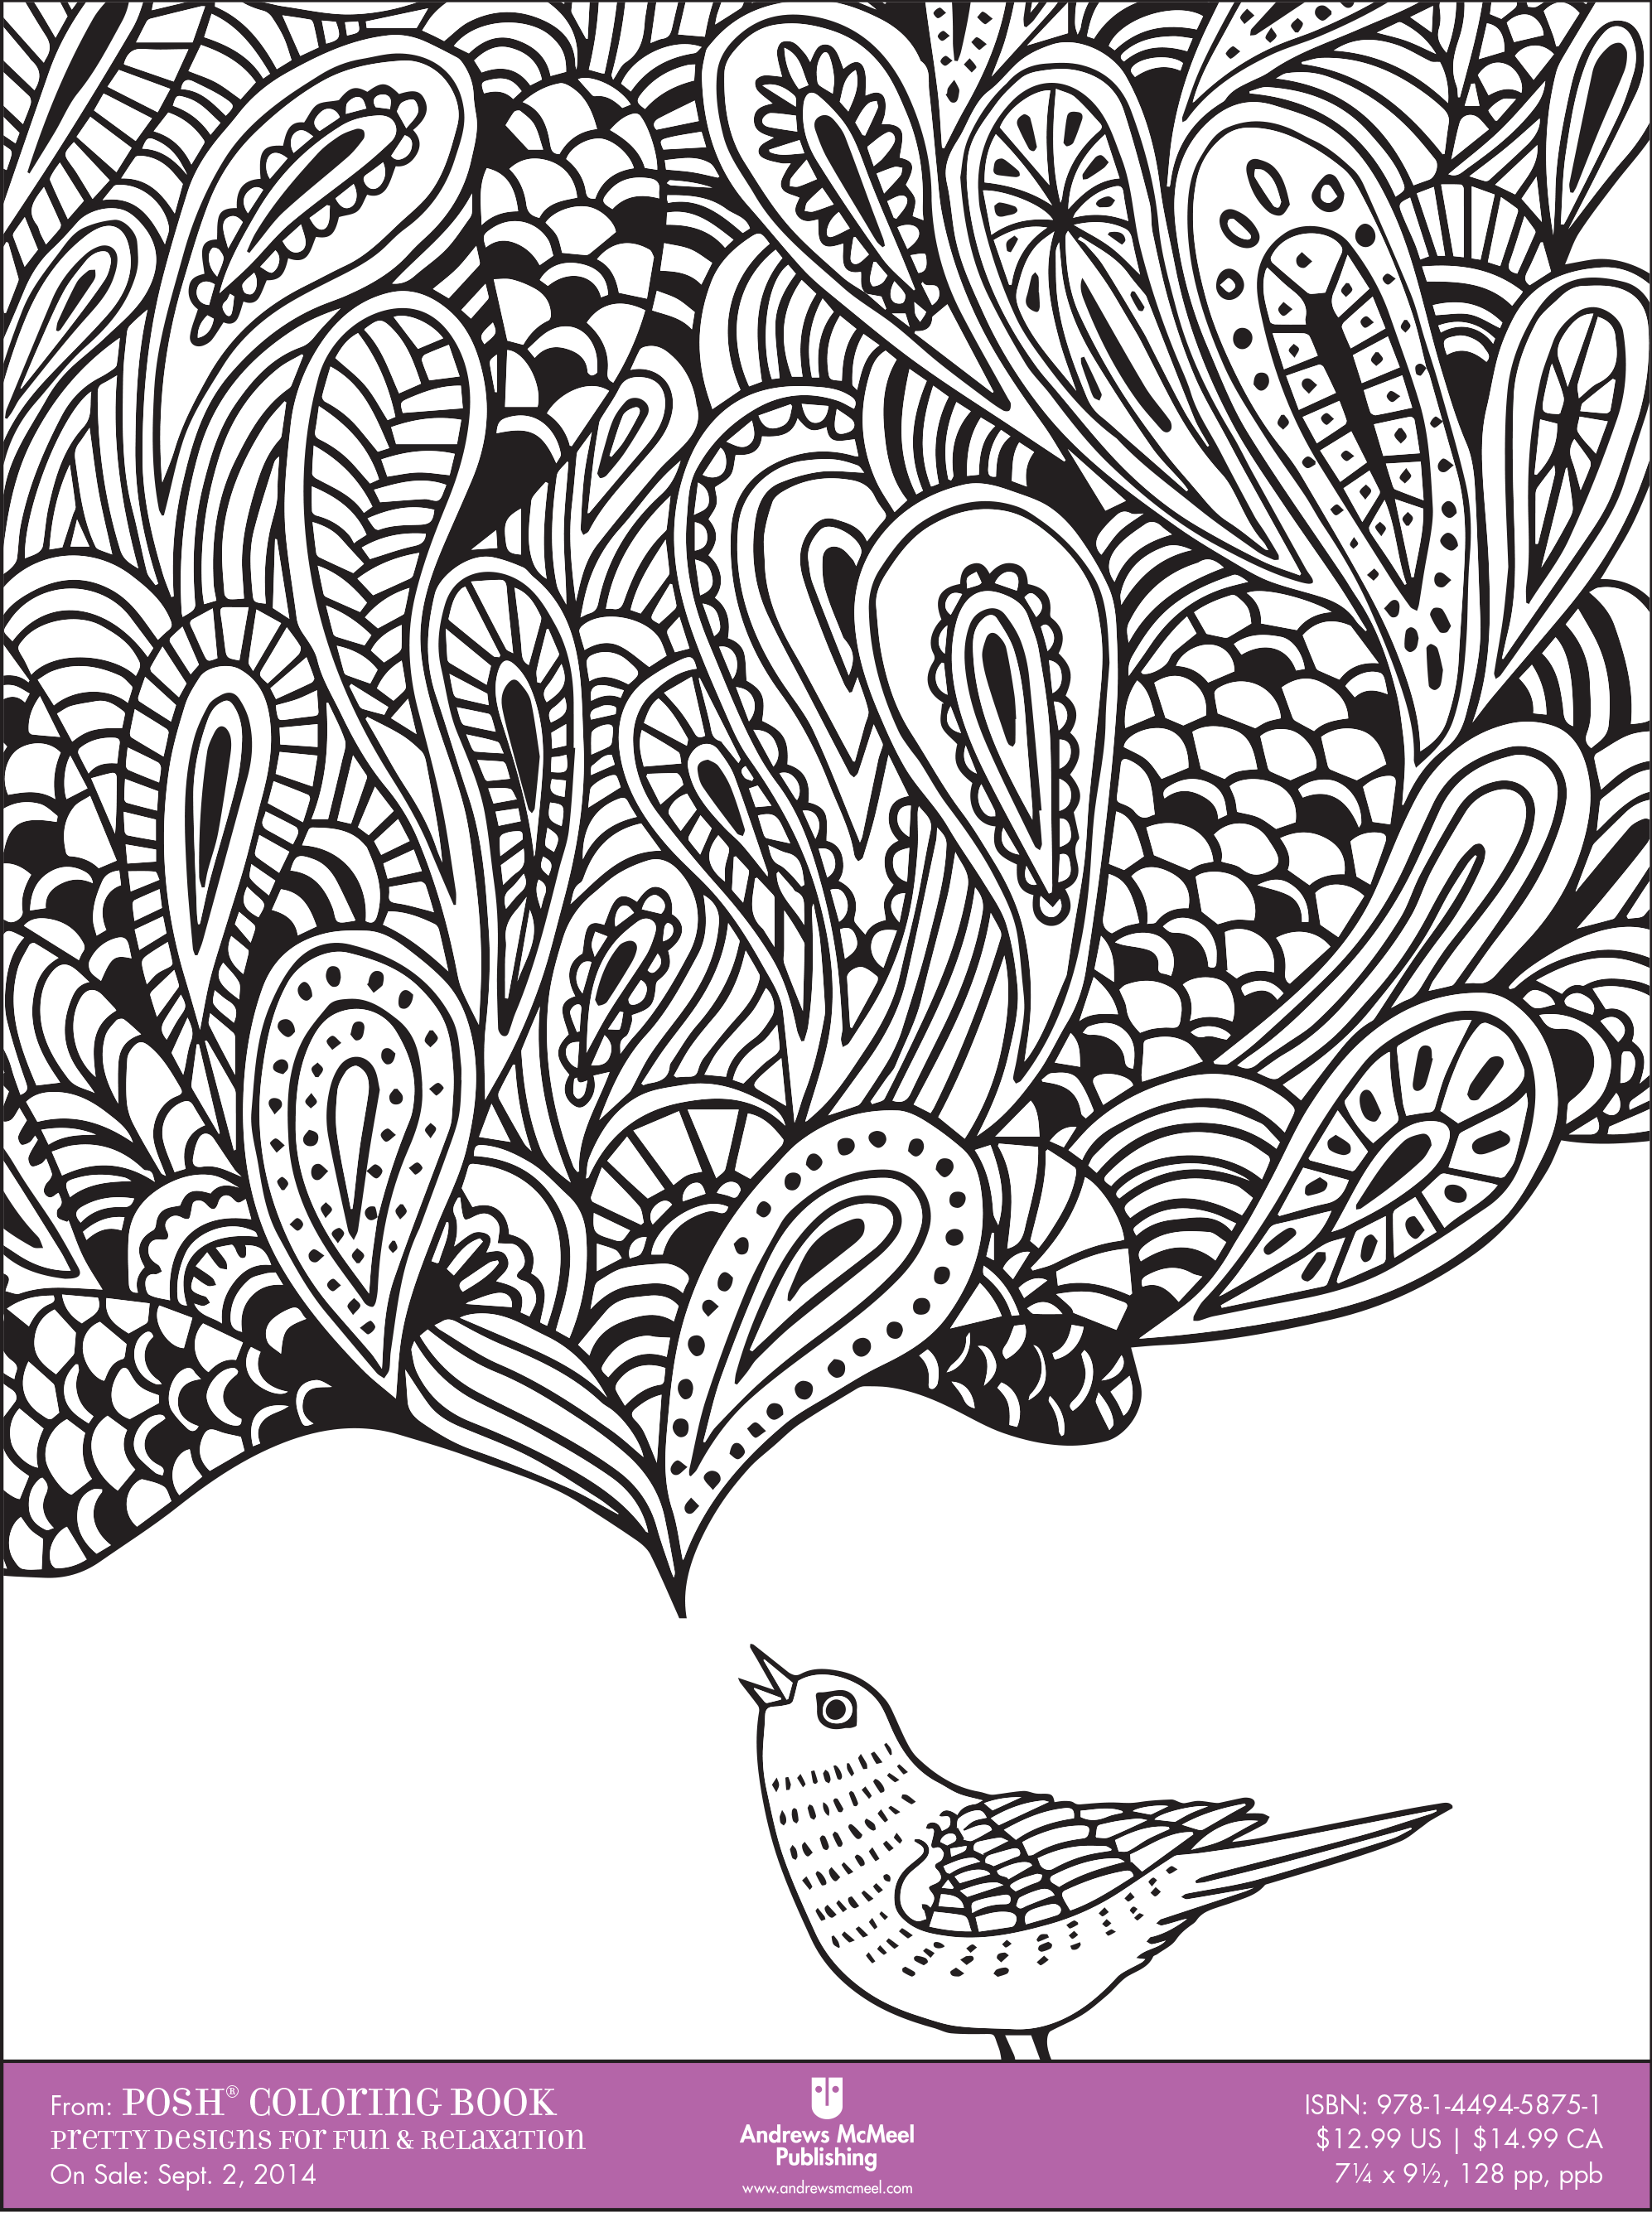 coloring books for adults downloadable sample pages are available here - Download Coloring Pages For Adults